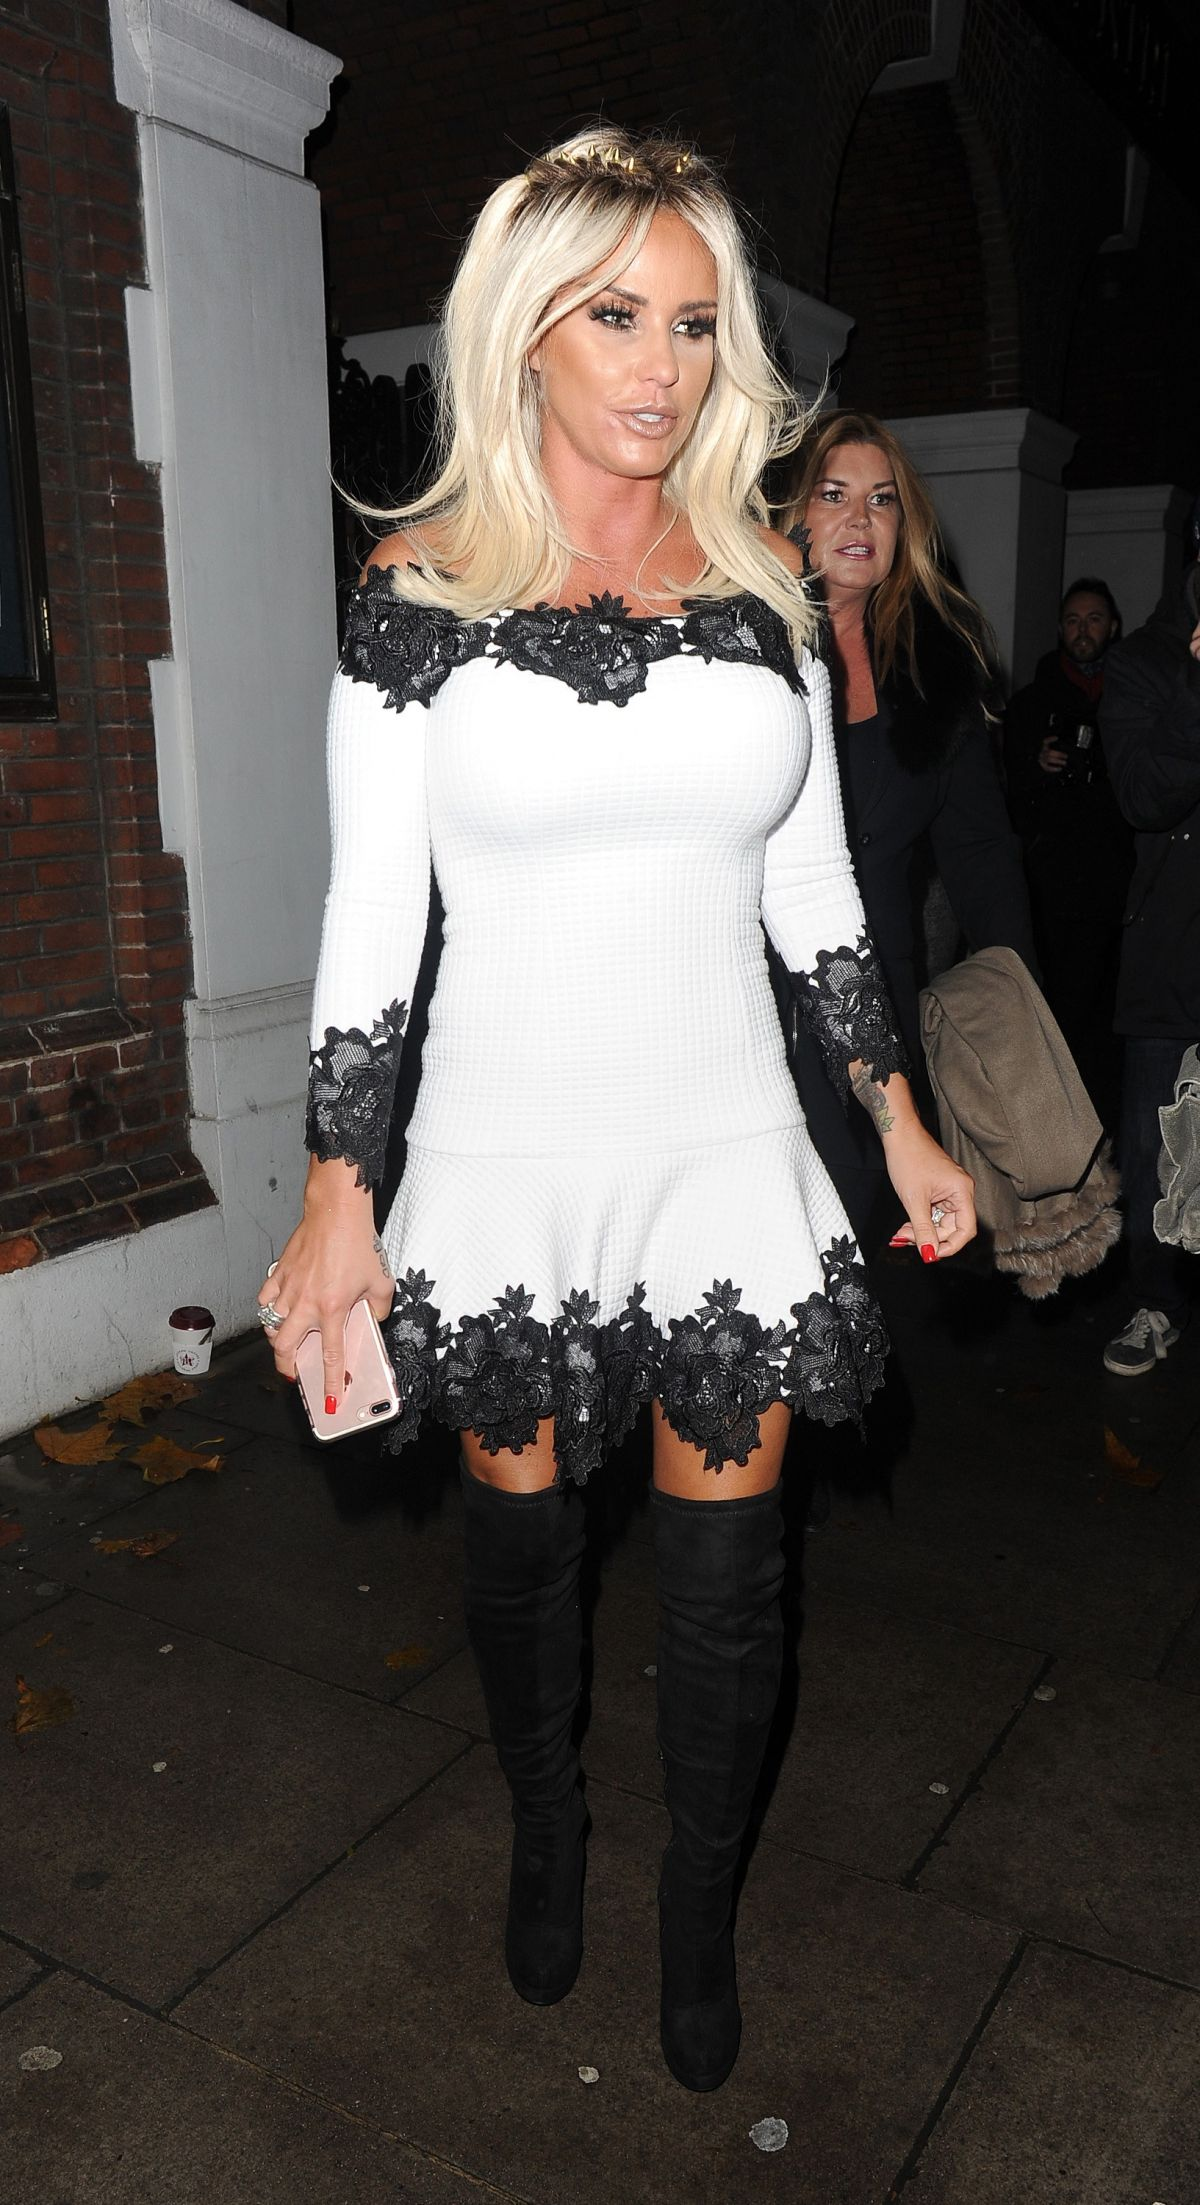 Katie Price Out for the evening in London   katie-price-out-for-the-evening-in-london_2